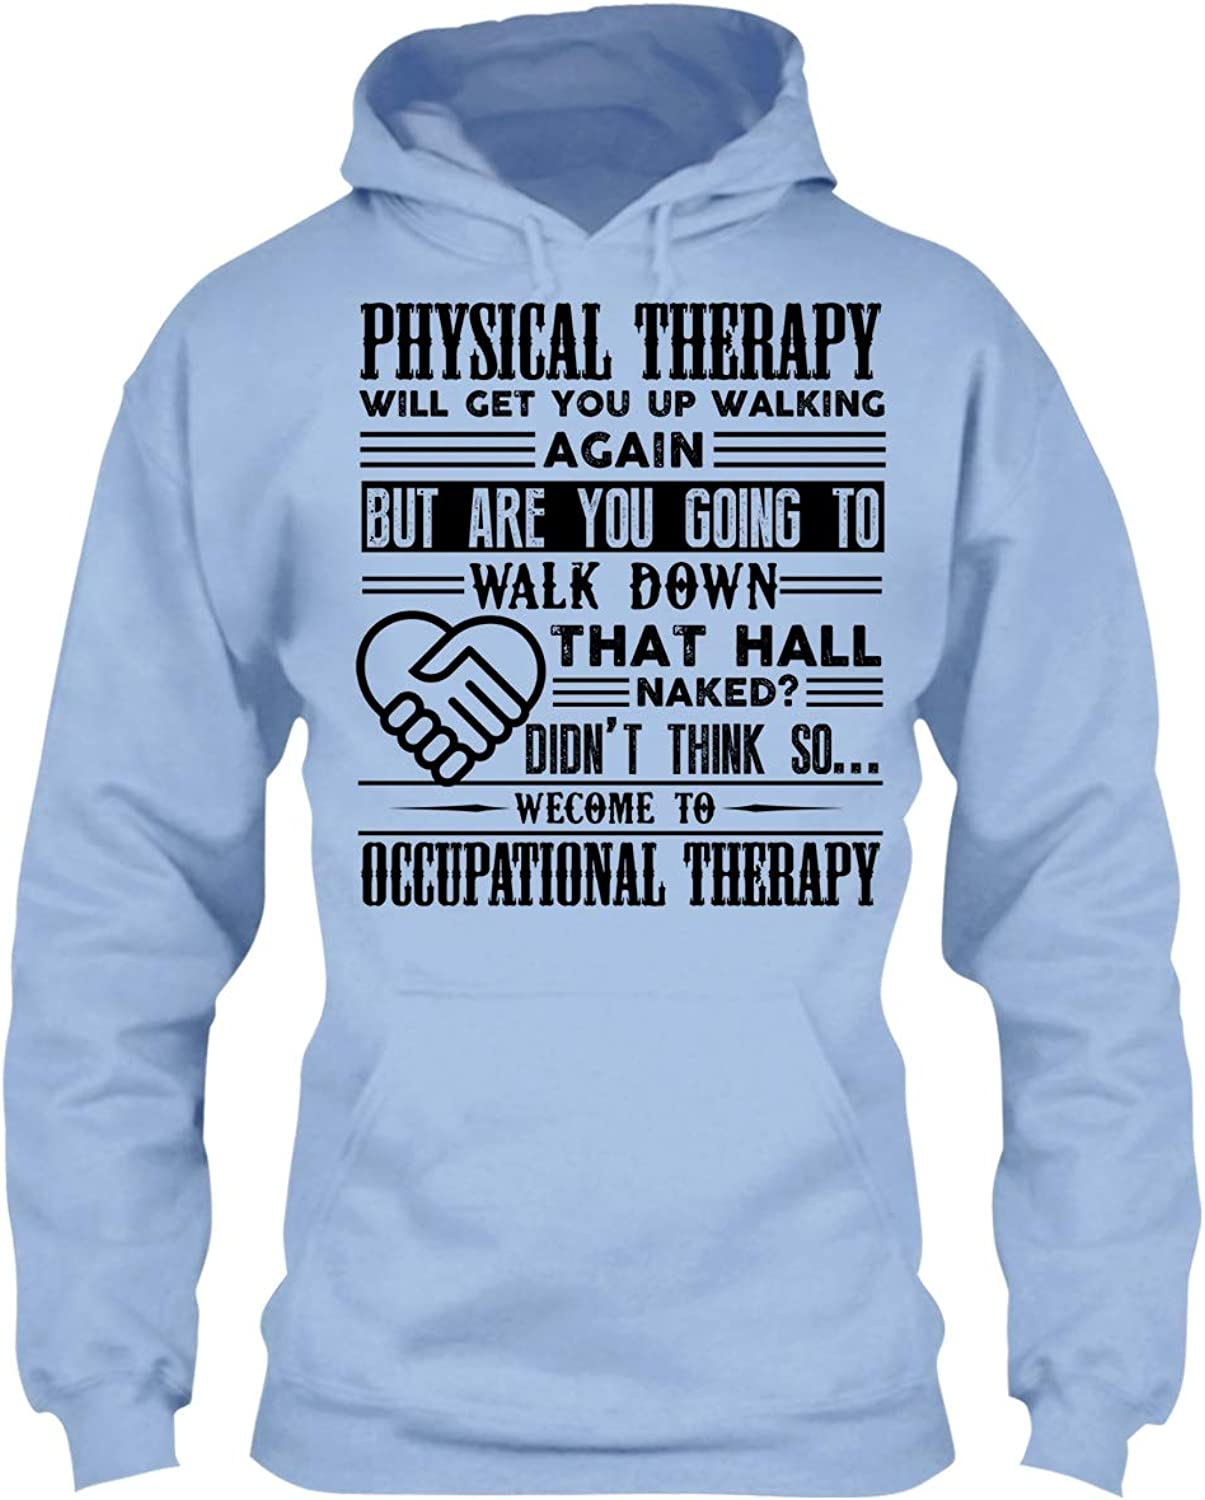 Arered Occupational Therapy T Shirt  Occupational Therapy Job Cool T Shirts Design